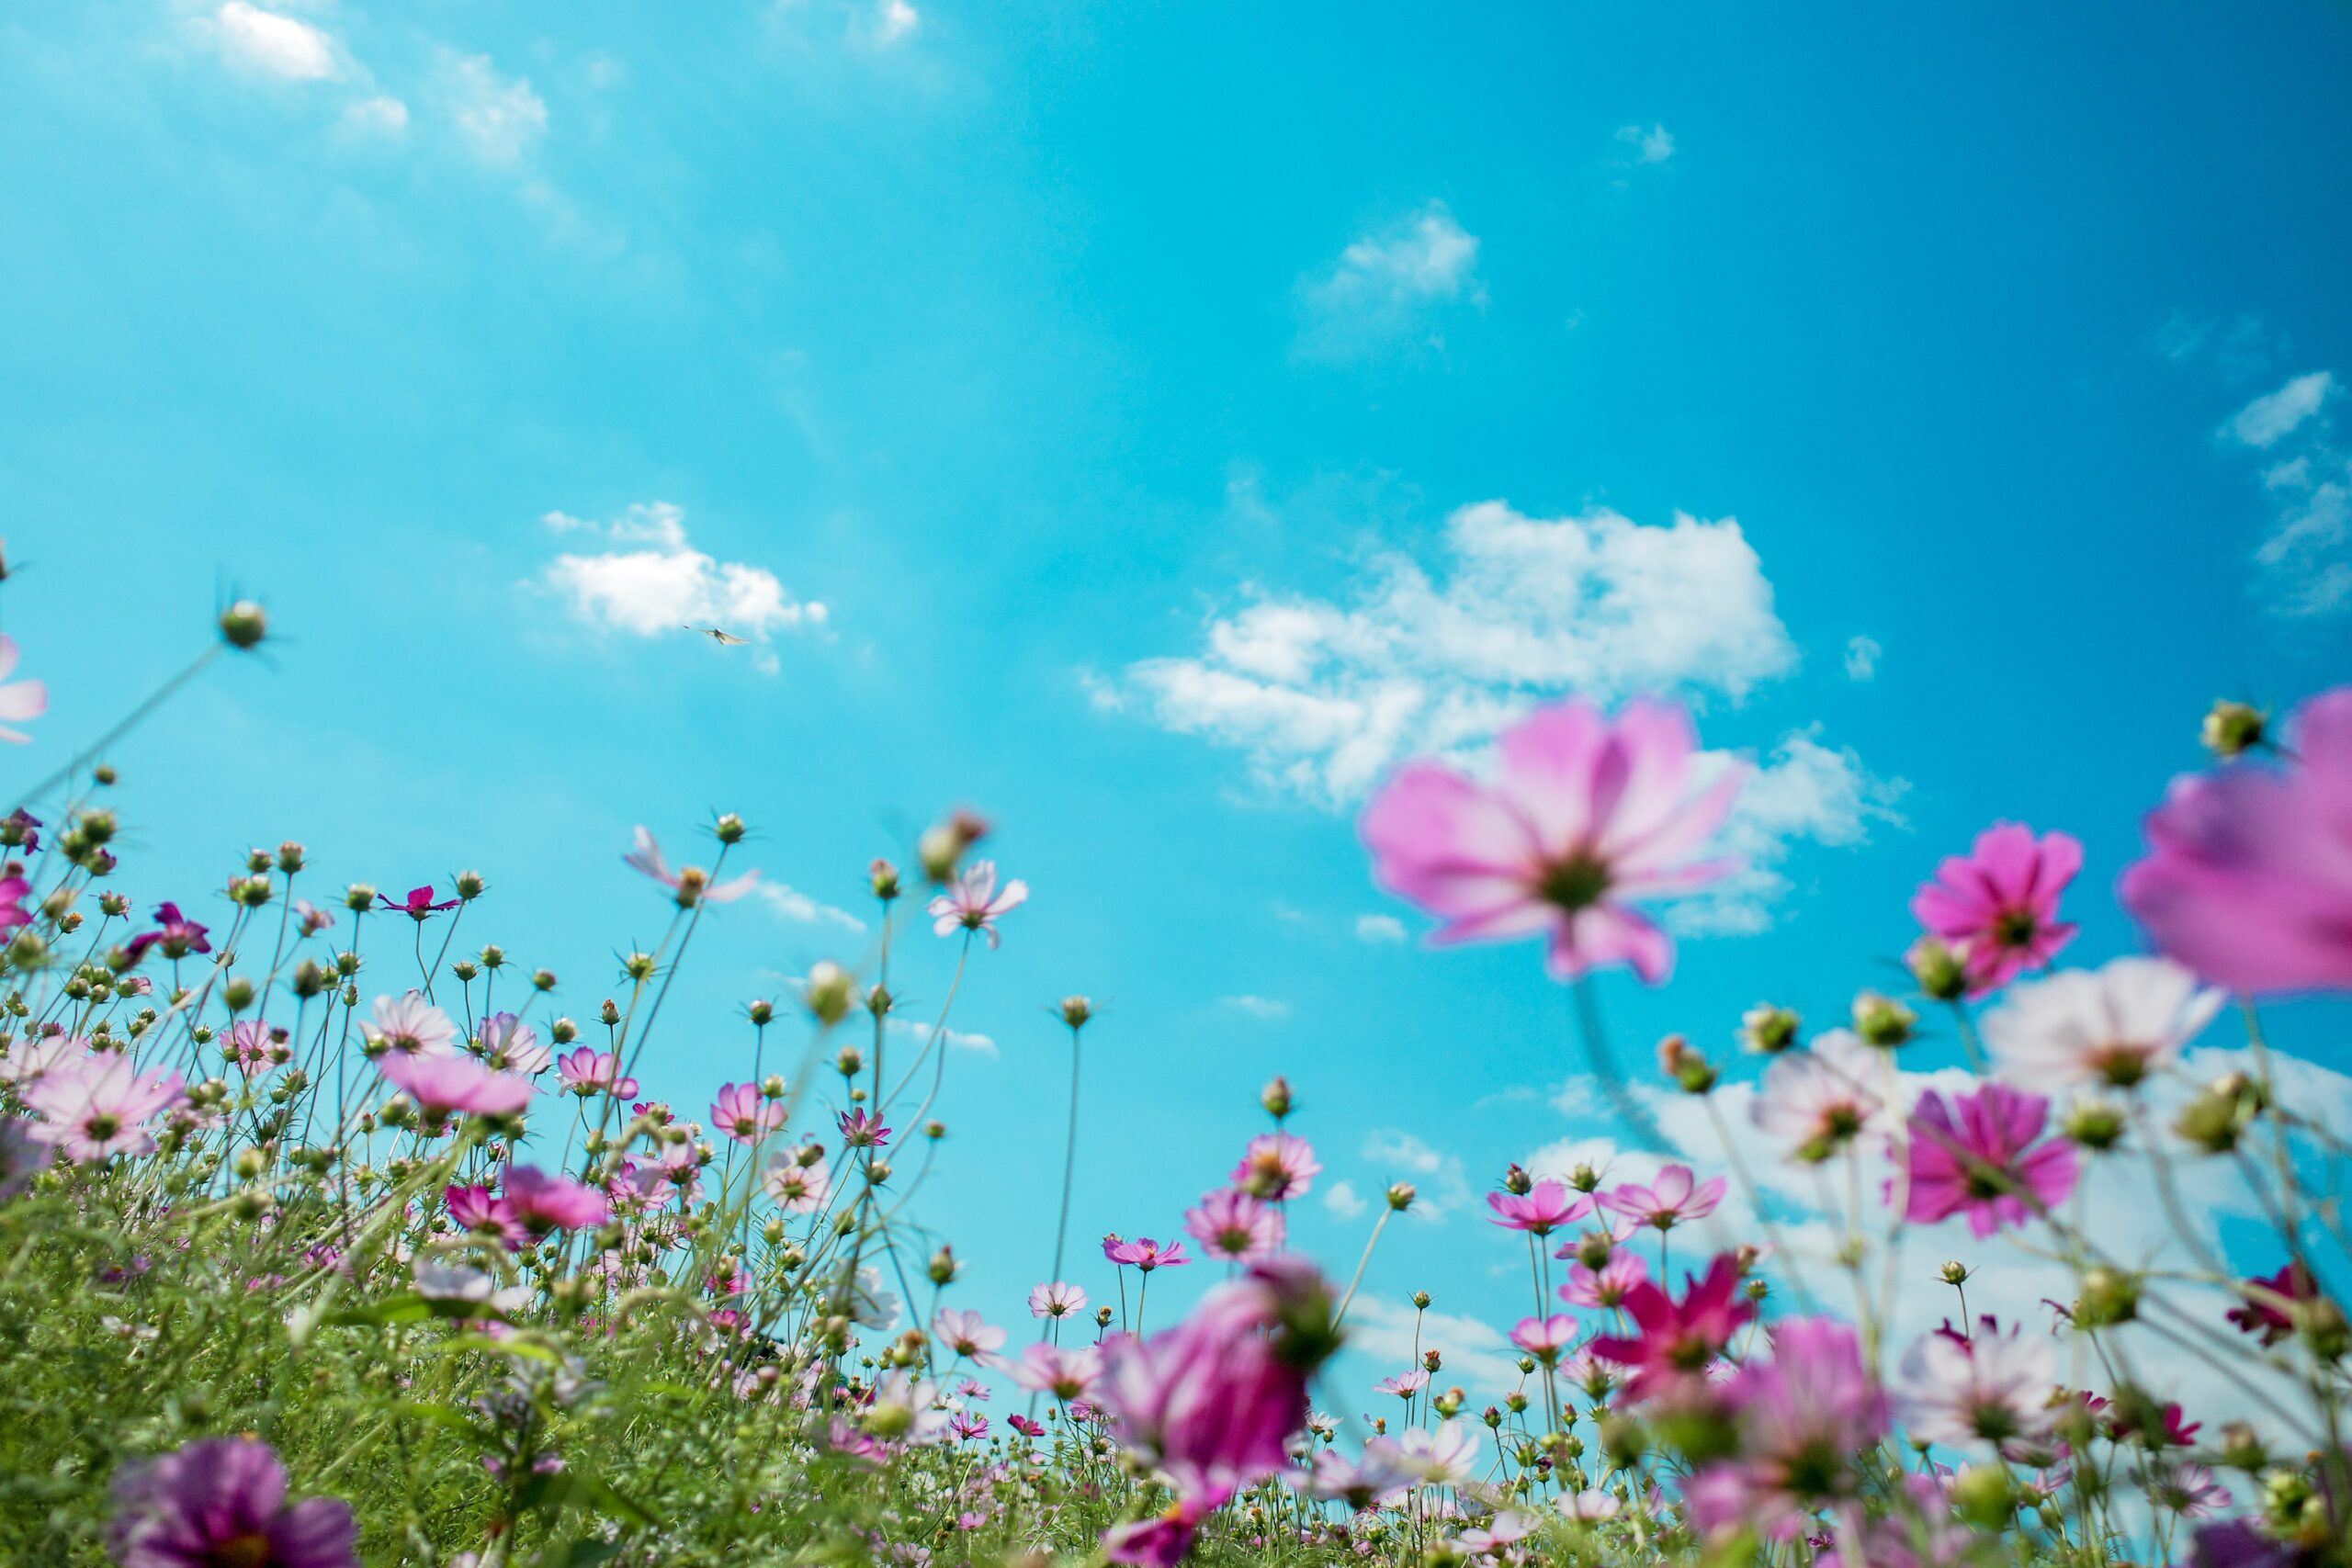 field of wildflowers in spring and blue sky with white clouds